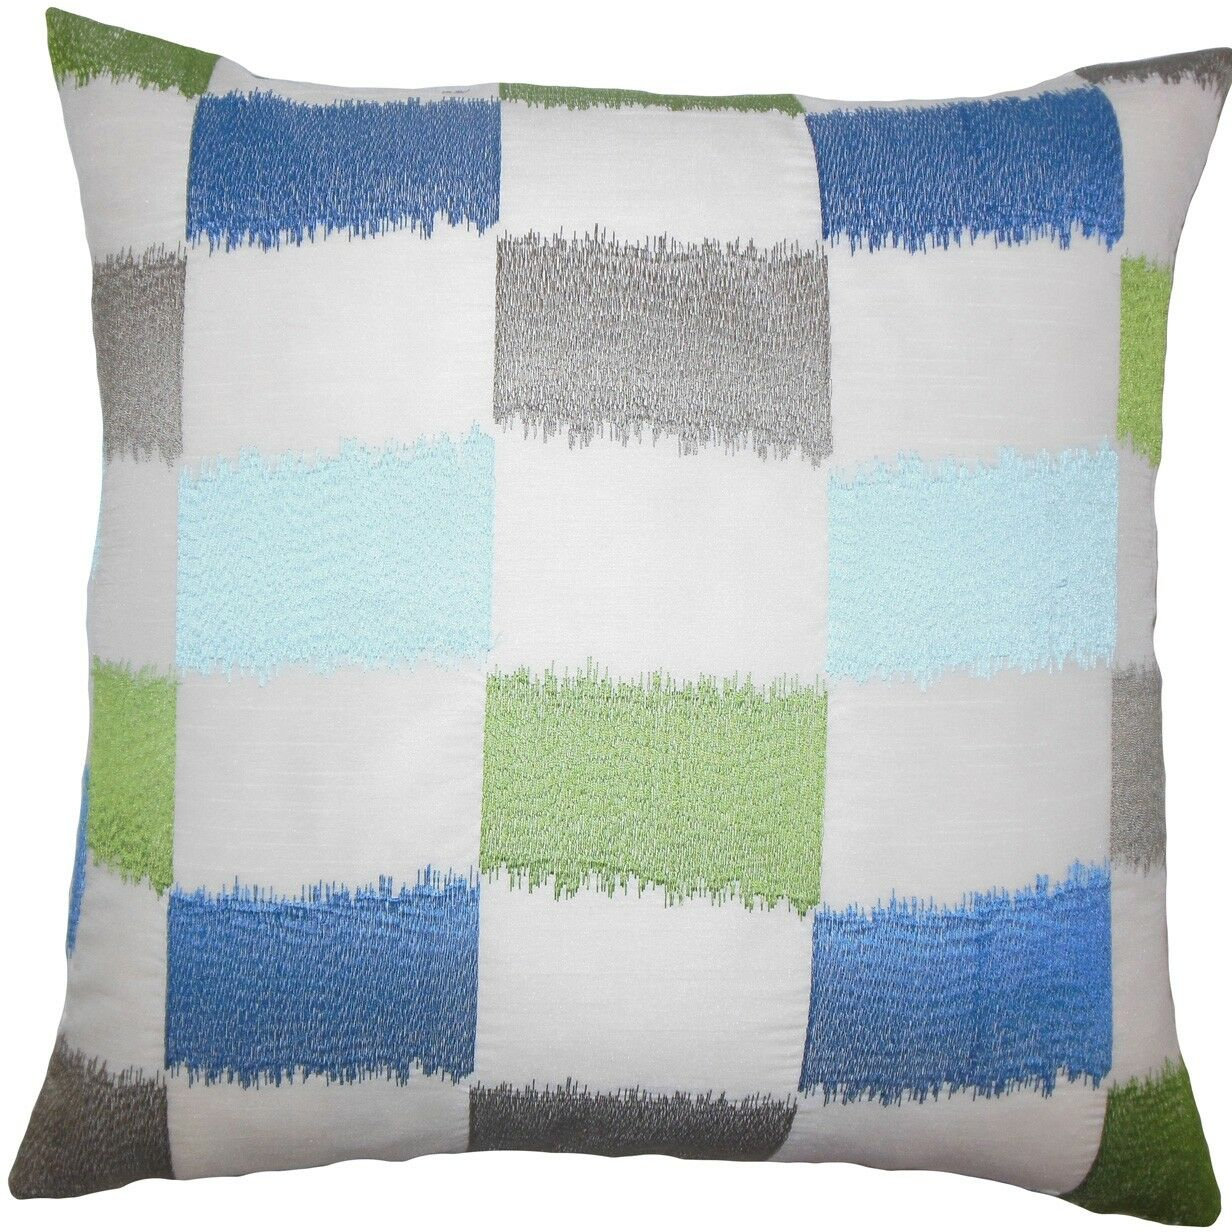 Ruchel Geometric Throw Pillow Color: Blue Green, Size: 20